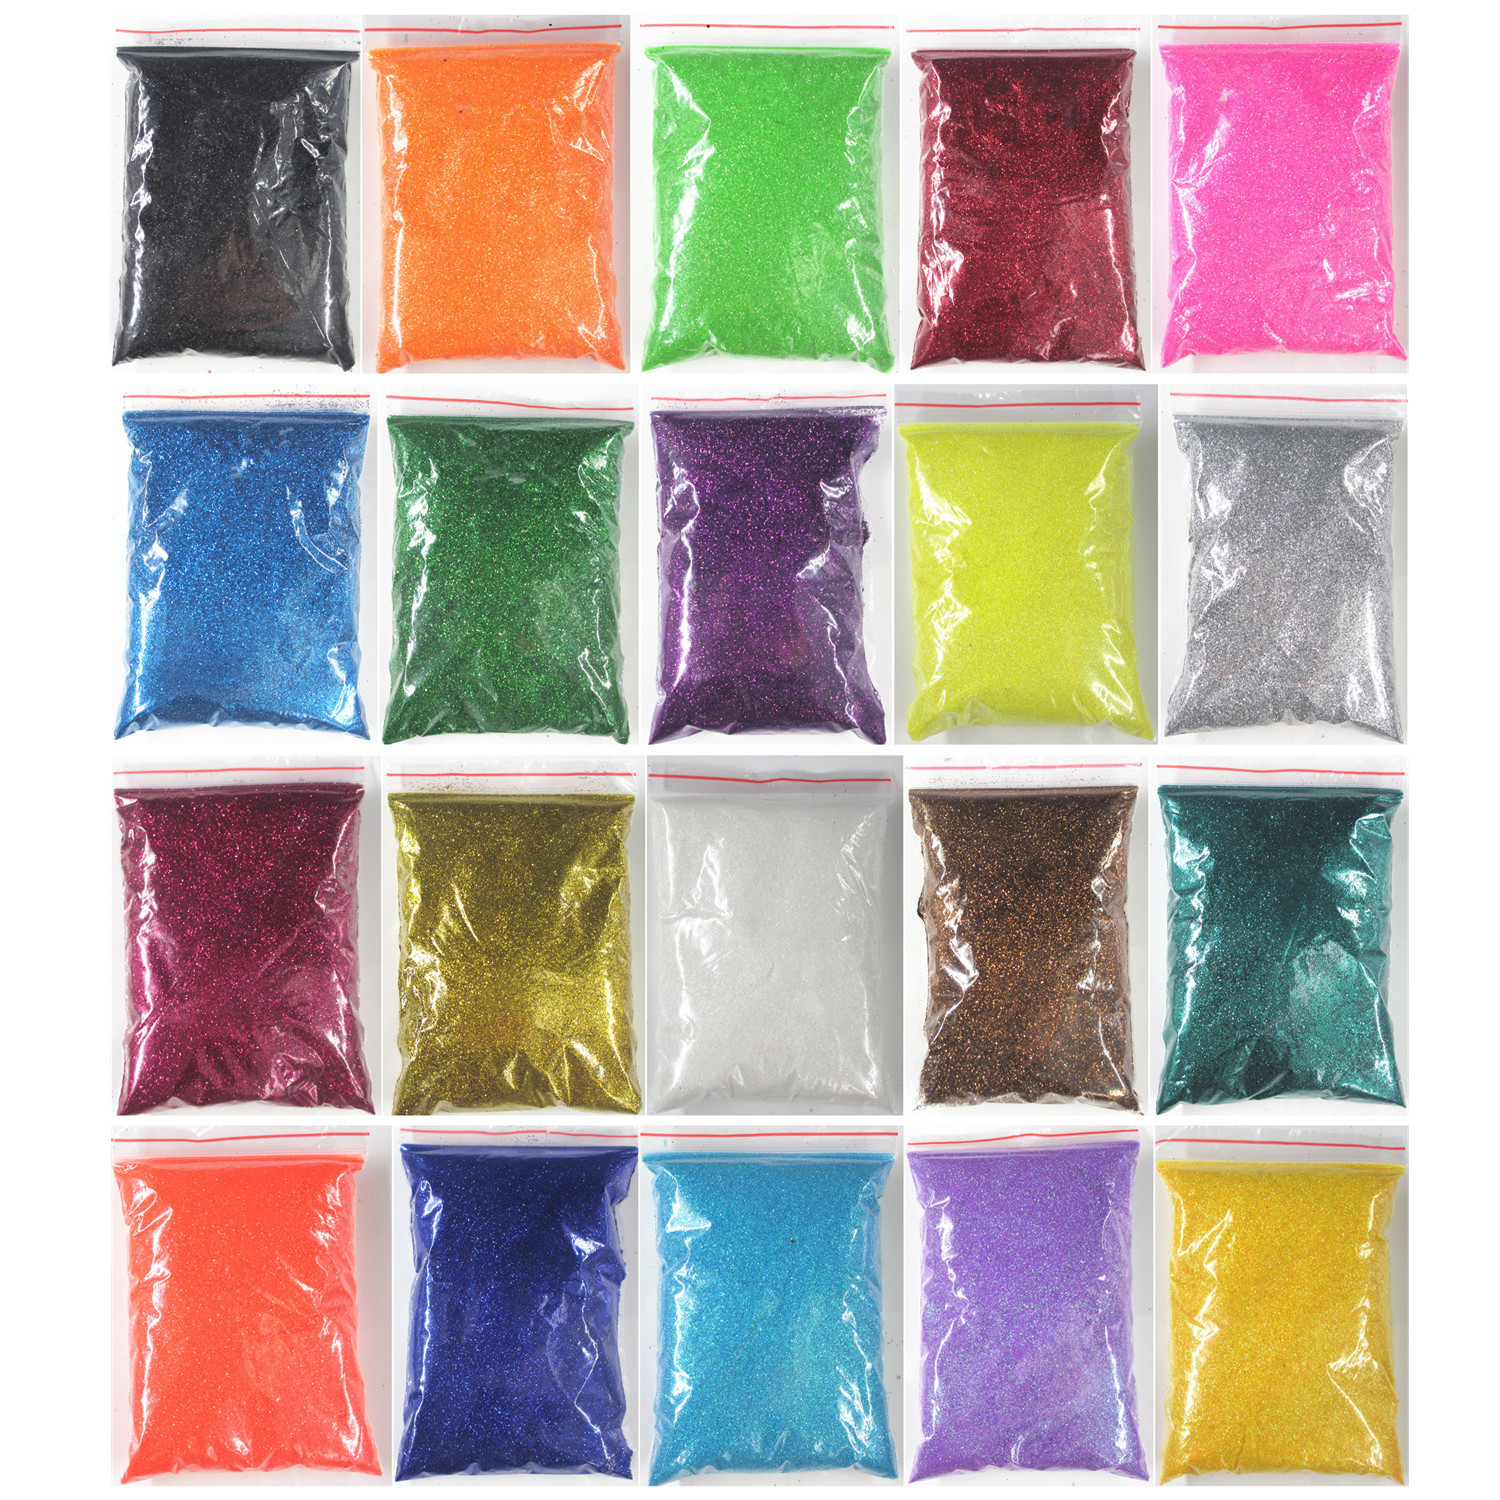 100G GLITTER WINE GLASS CRAFT NEON IRIDESCENT NAIL ART FLORISTRY DUST